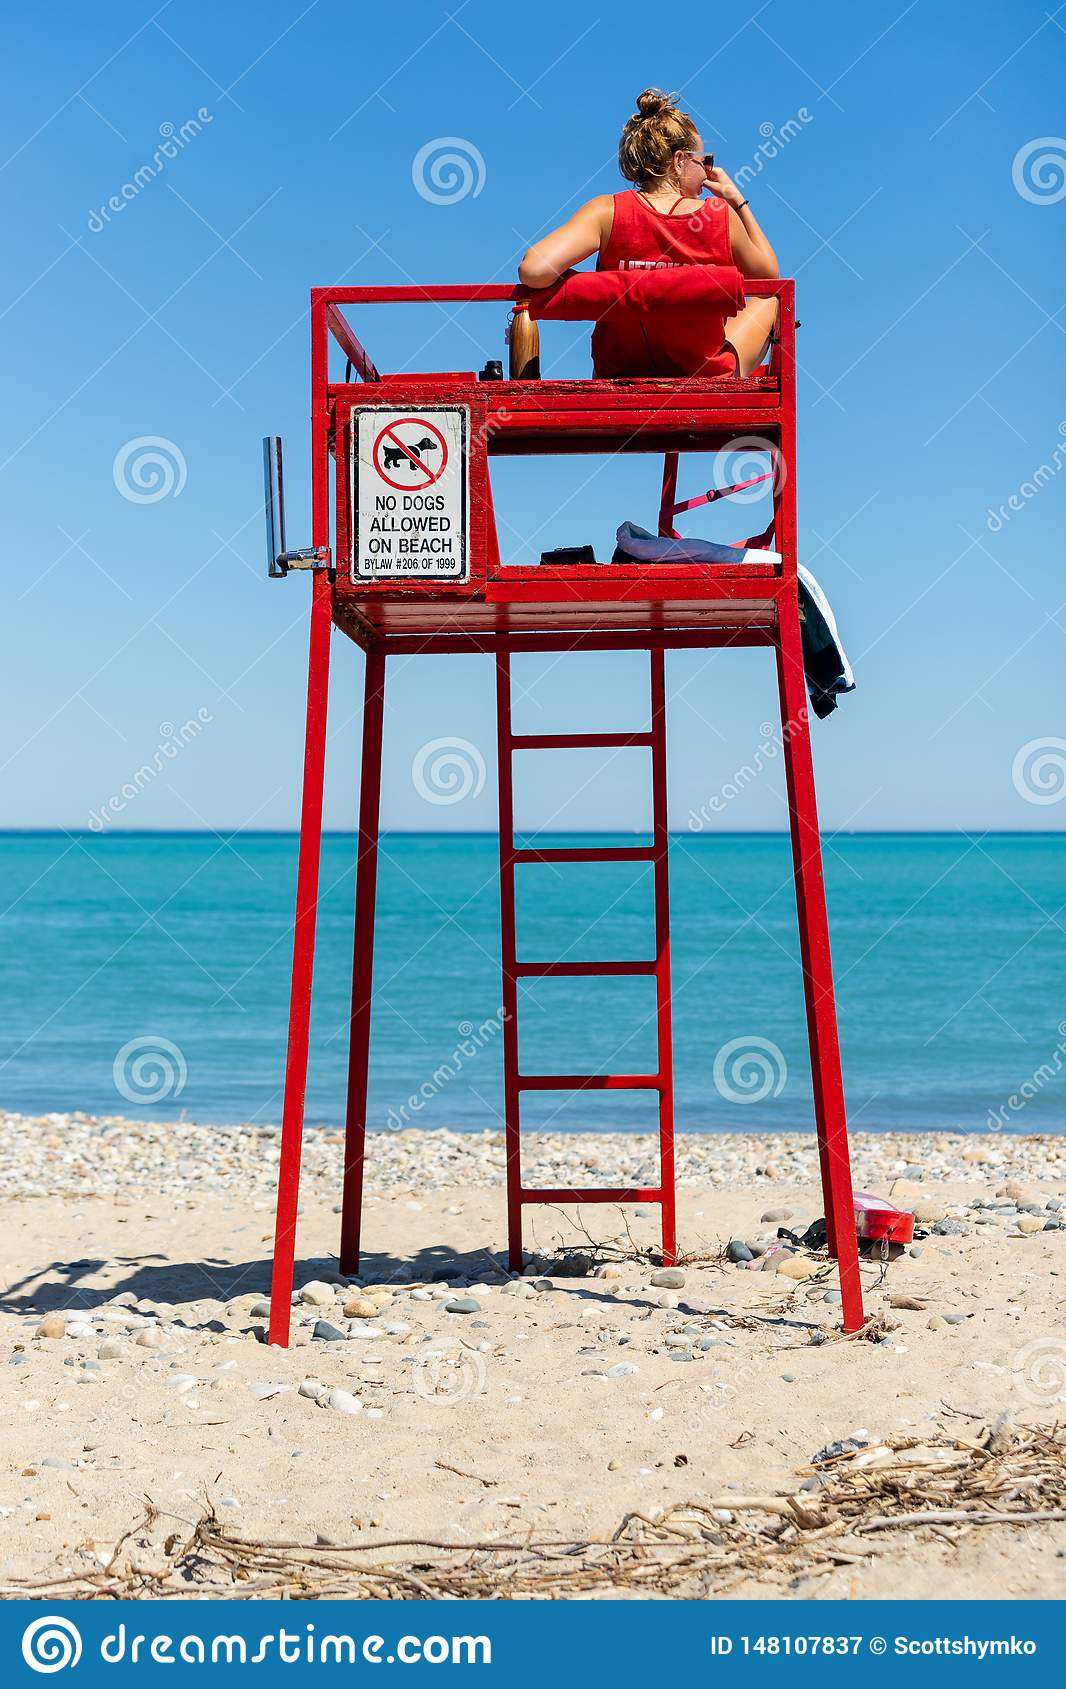 Lifeguard keeps watch on beach